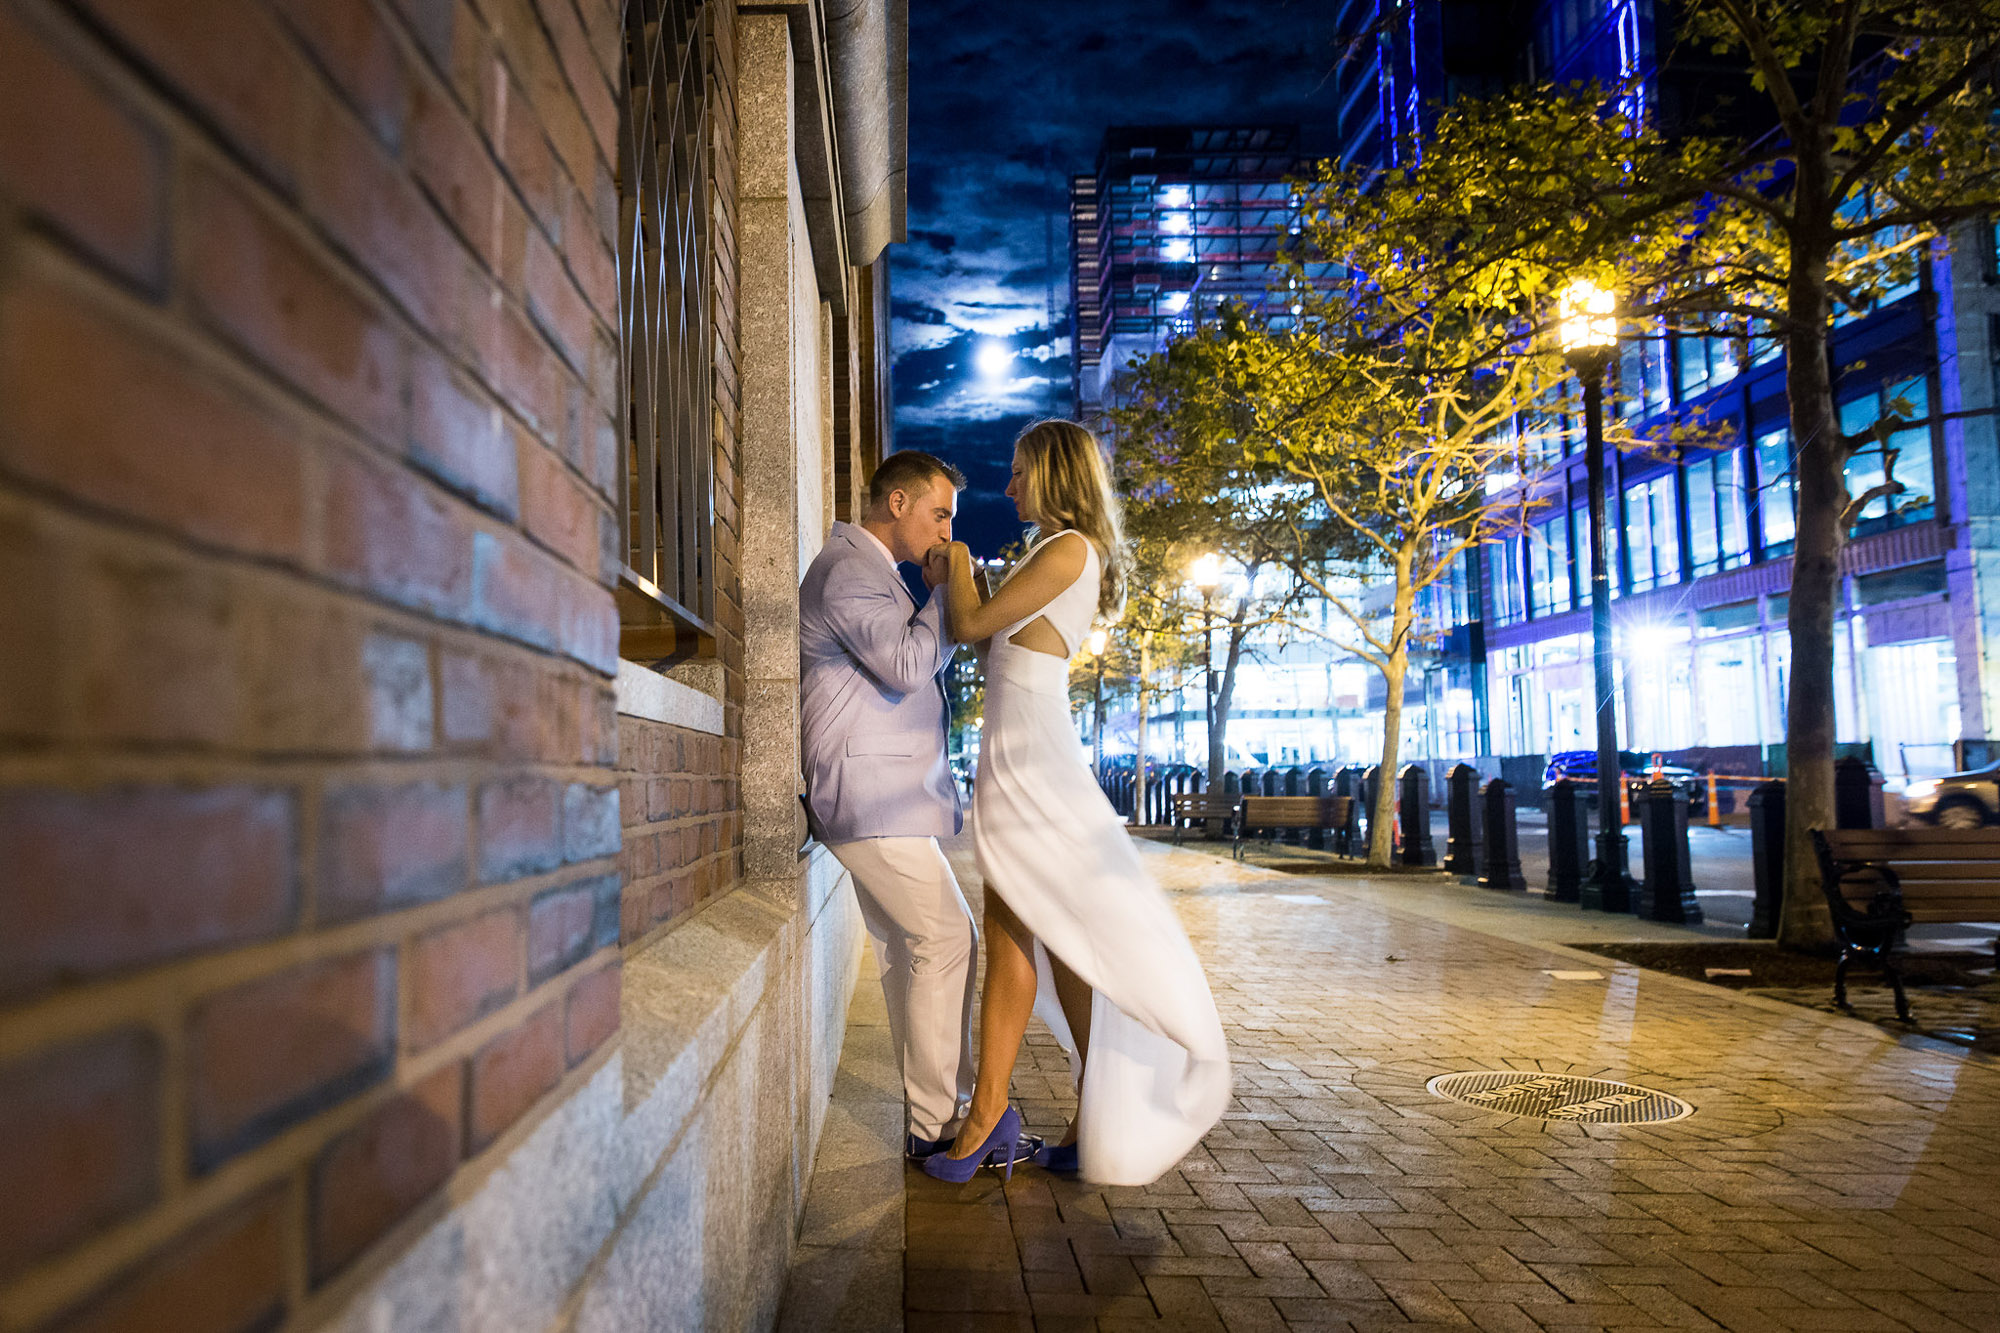 boston-wedding-photographer-26-north-studios-seaport-district-wedding.jpg